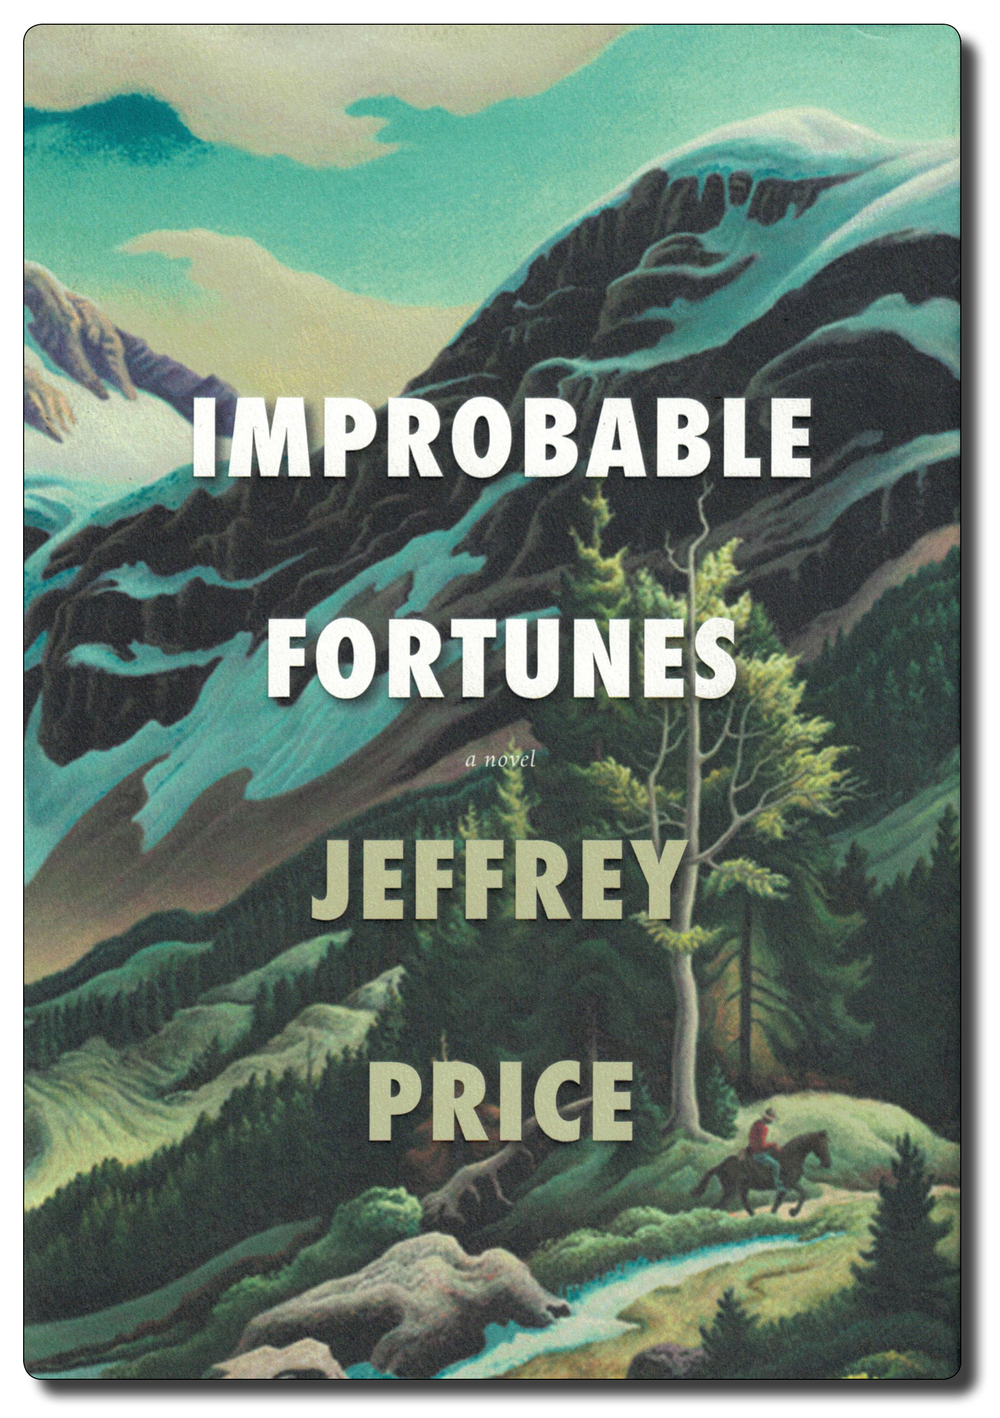 Improbable Fortunes Final Cover with shadow rgb.jpg